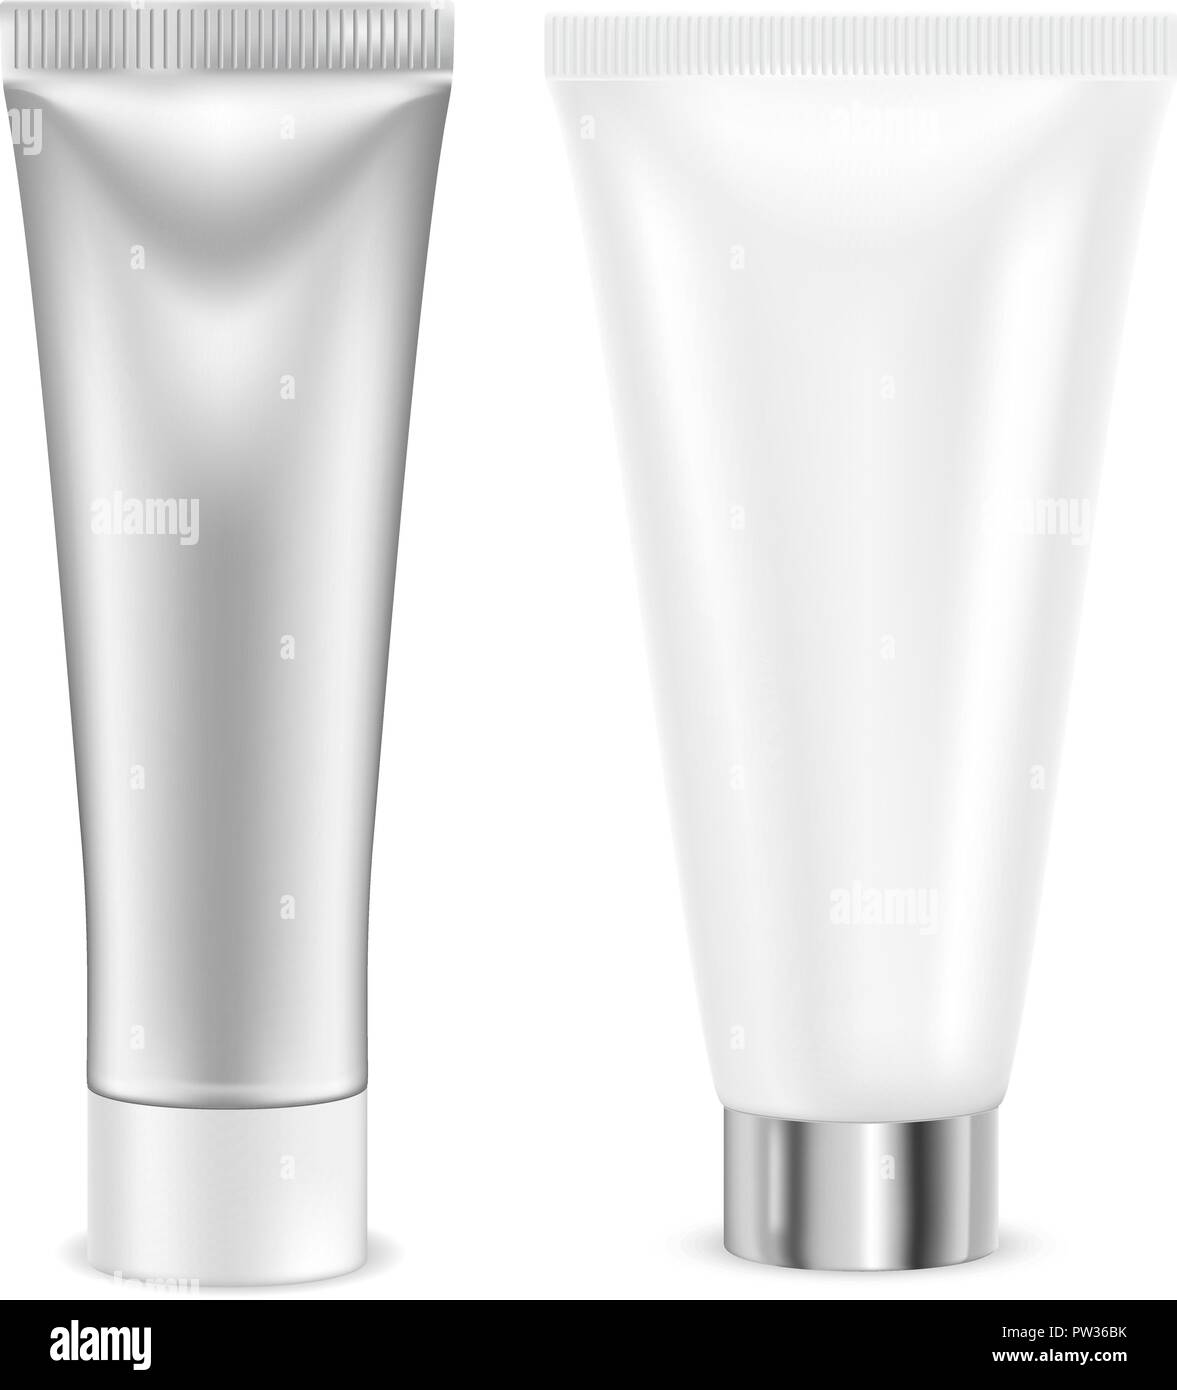 Cream tube. Silver and white container - Stock Image